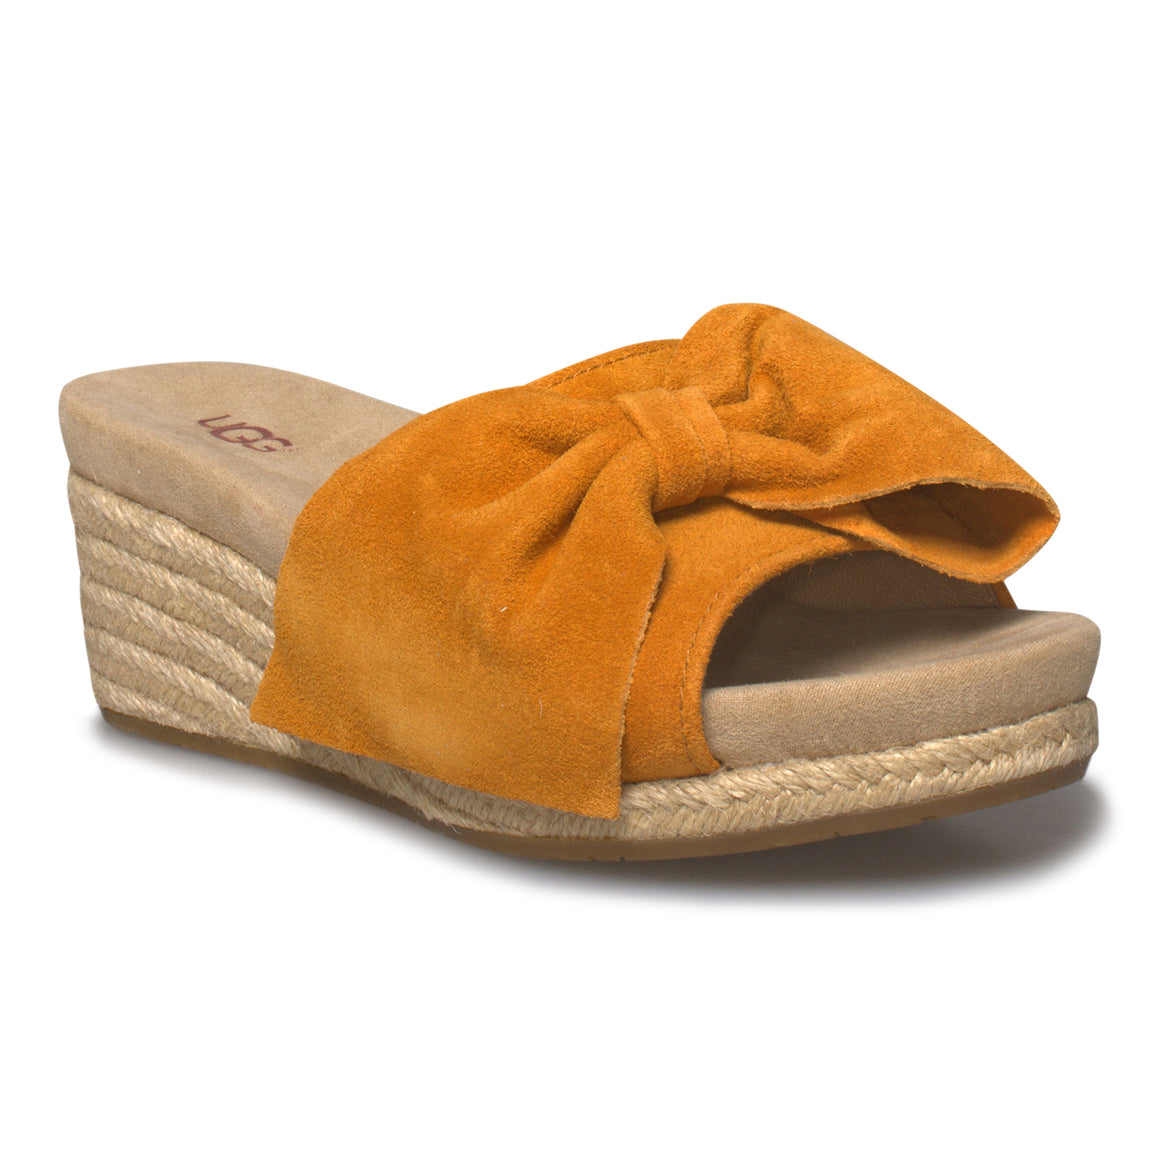 UGG Jaycee Adobe Gold Sandals - Women's